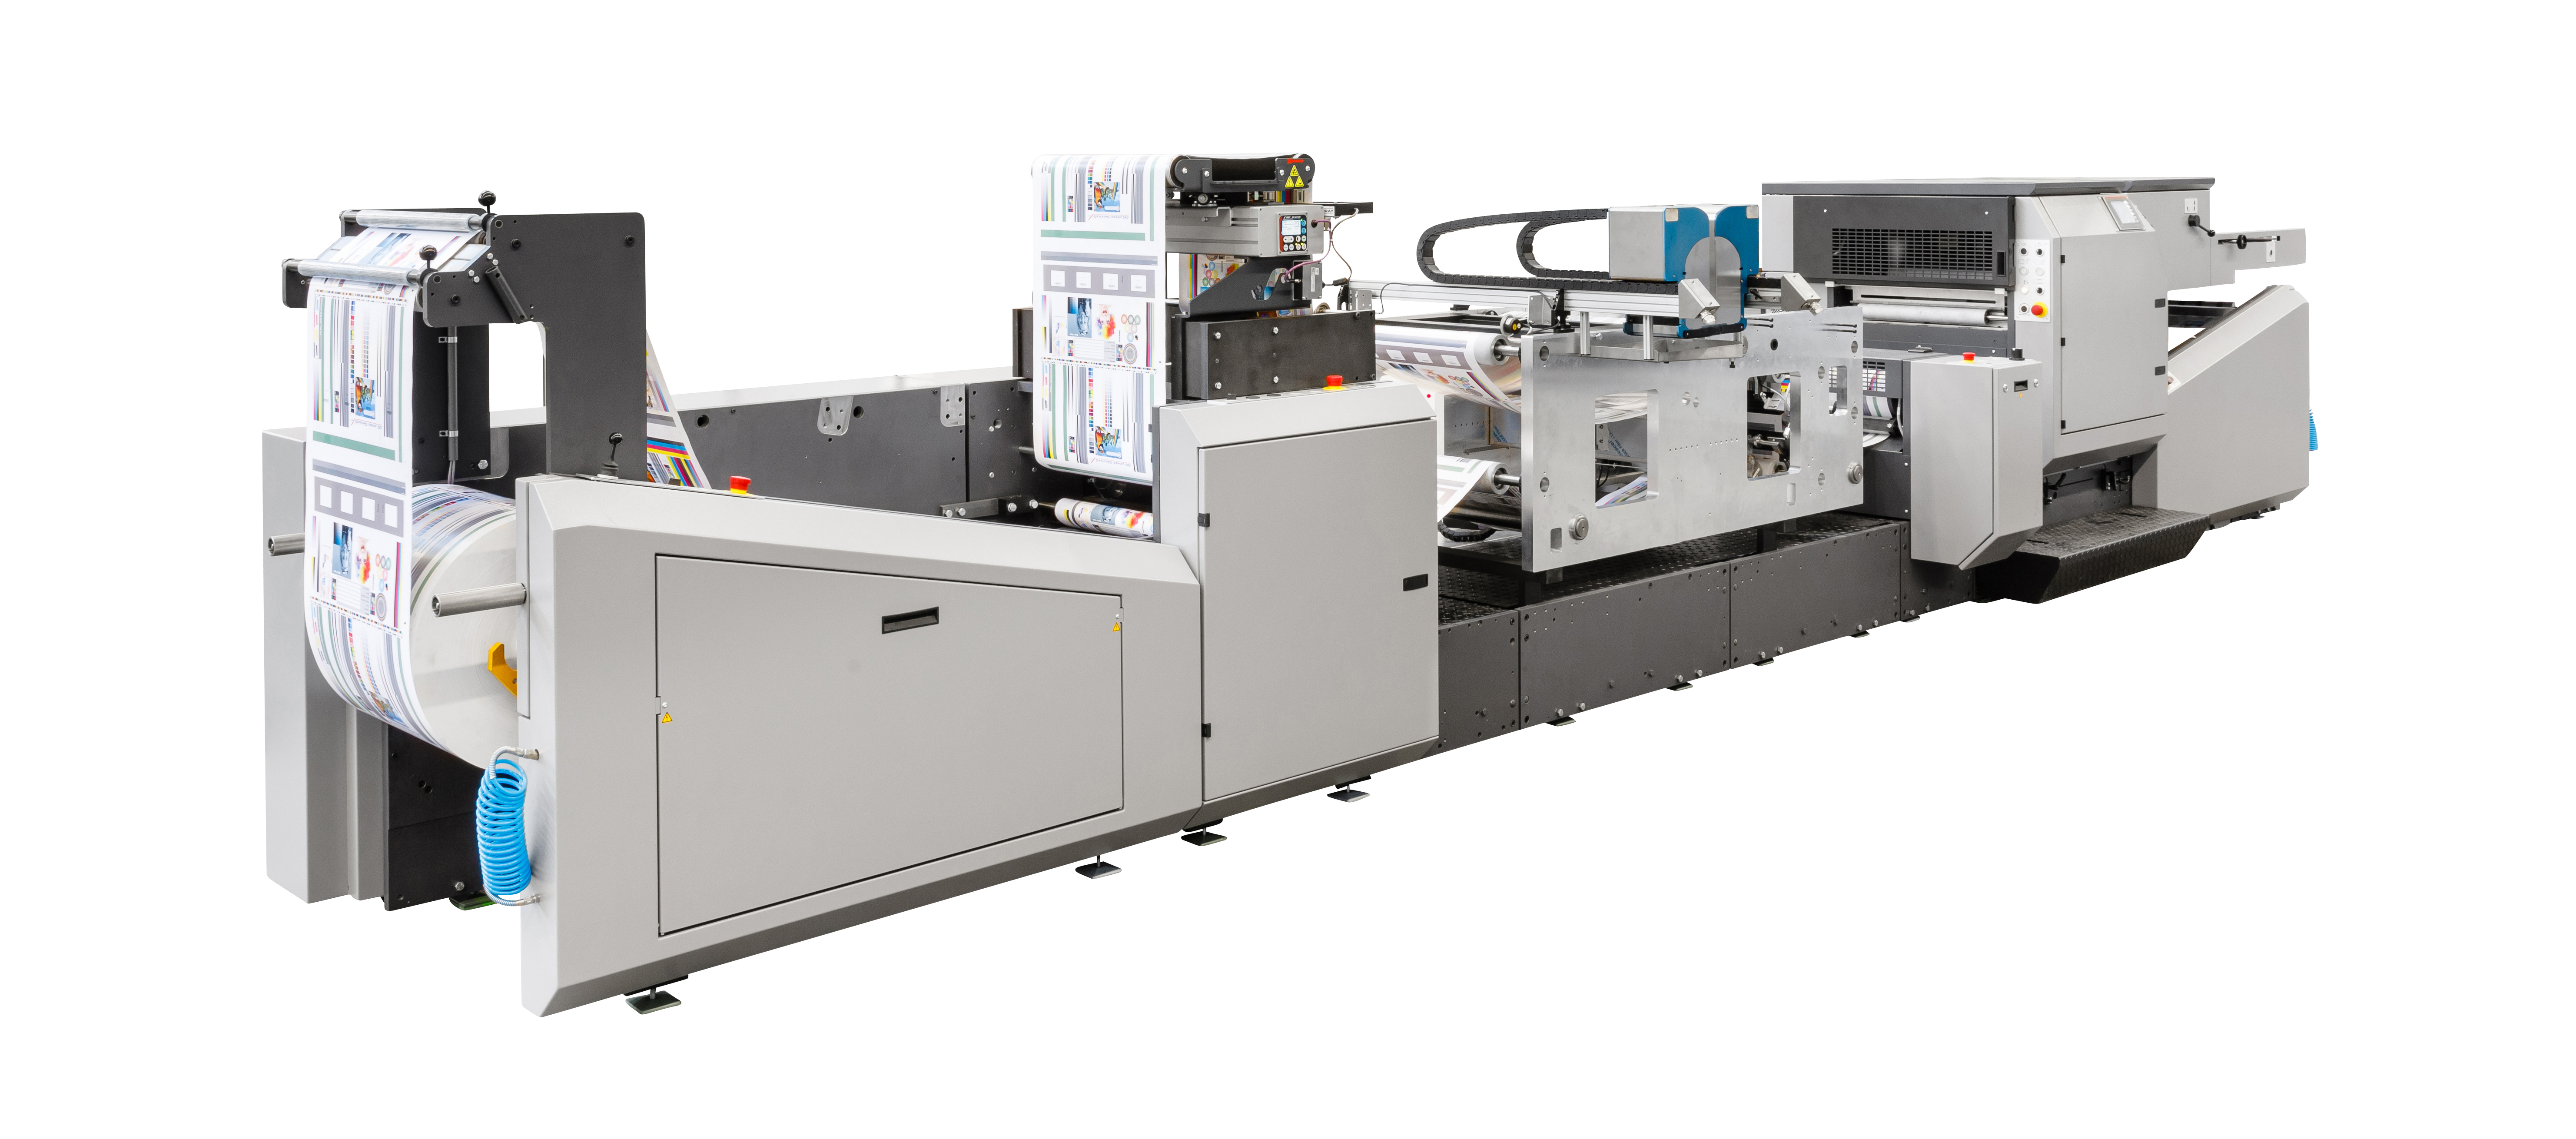 Vision for printing paper